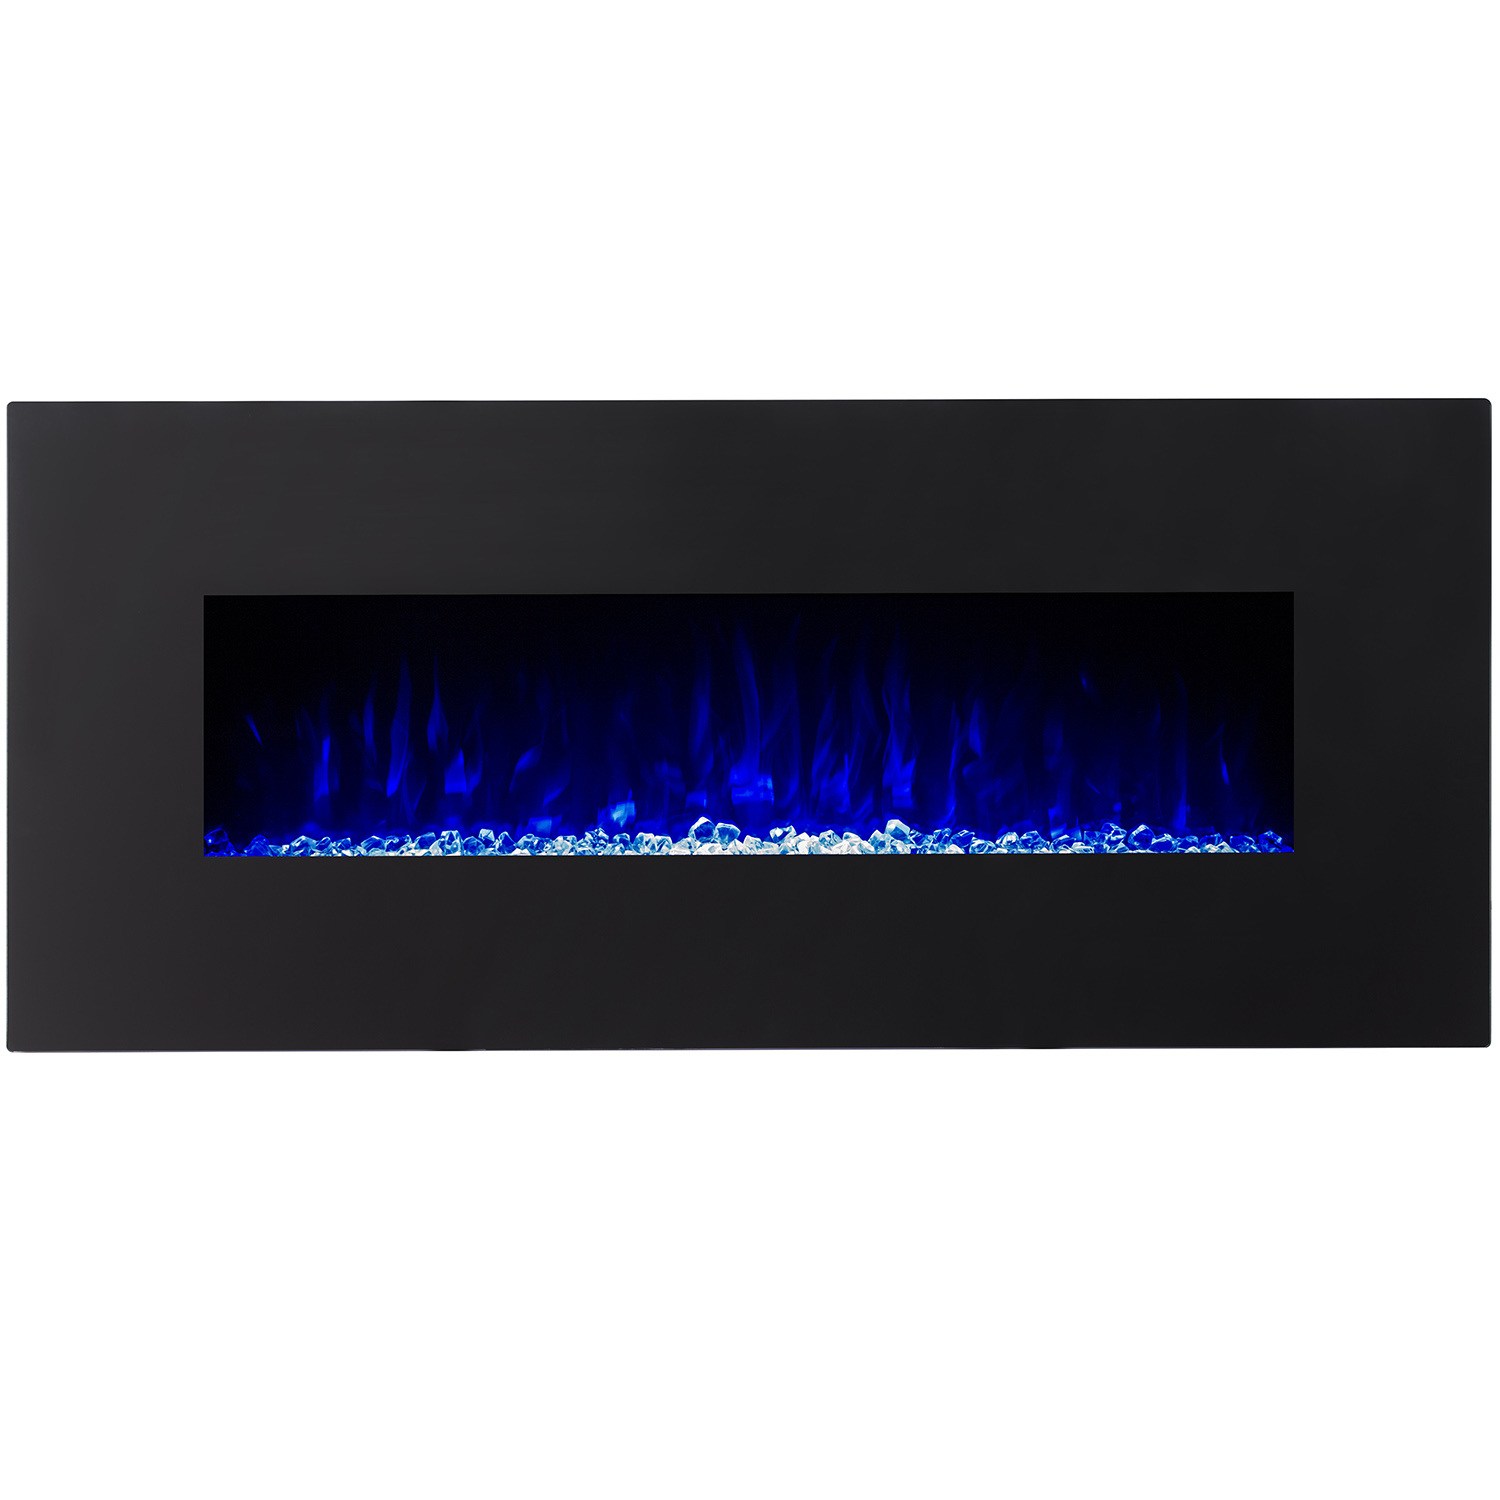 orion 50 inch black ventless heater electric wall mounted